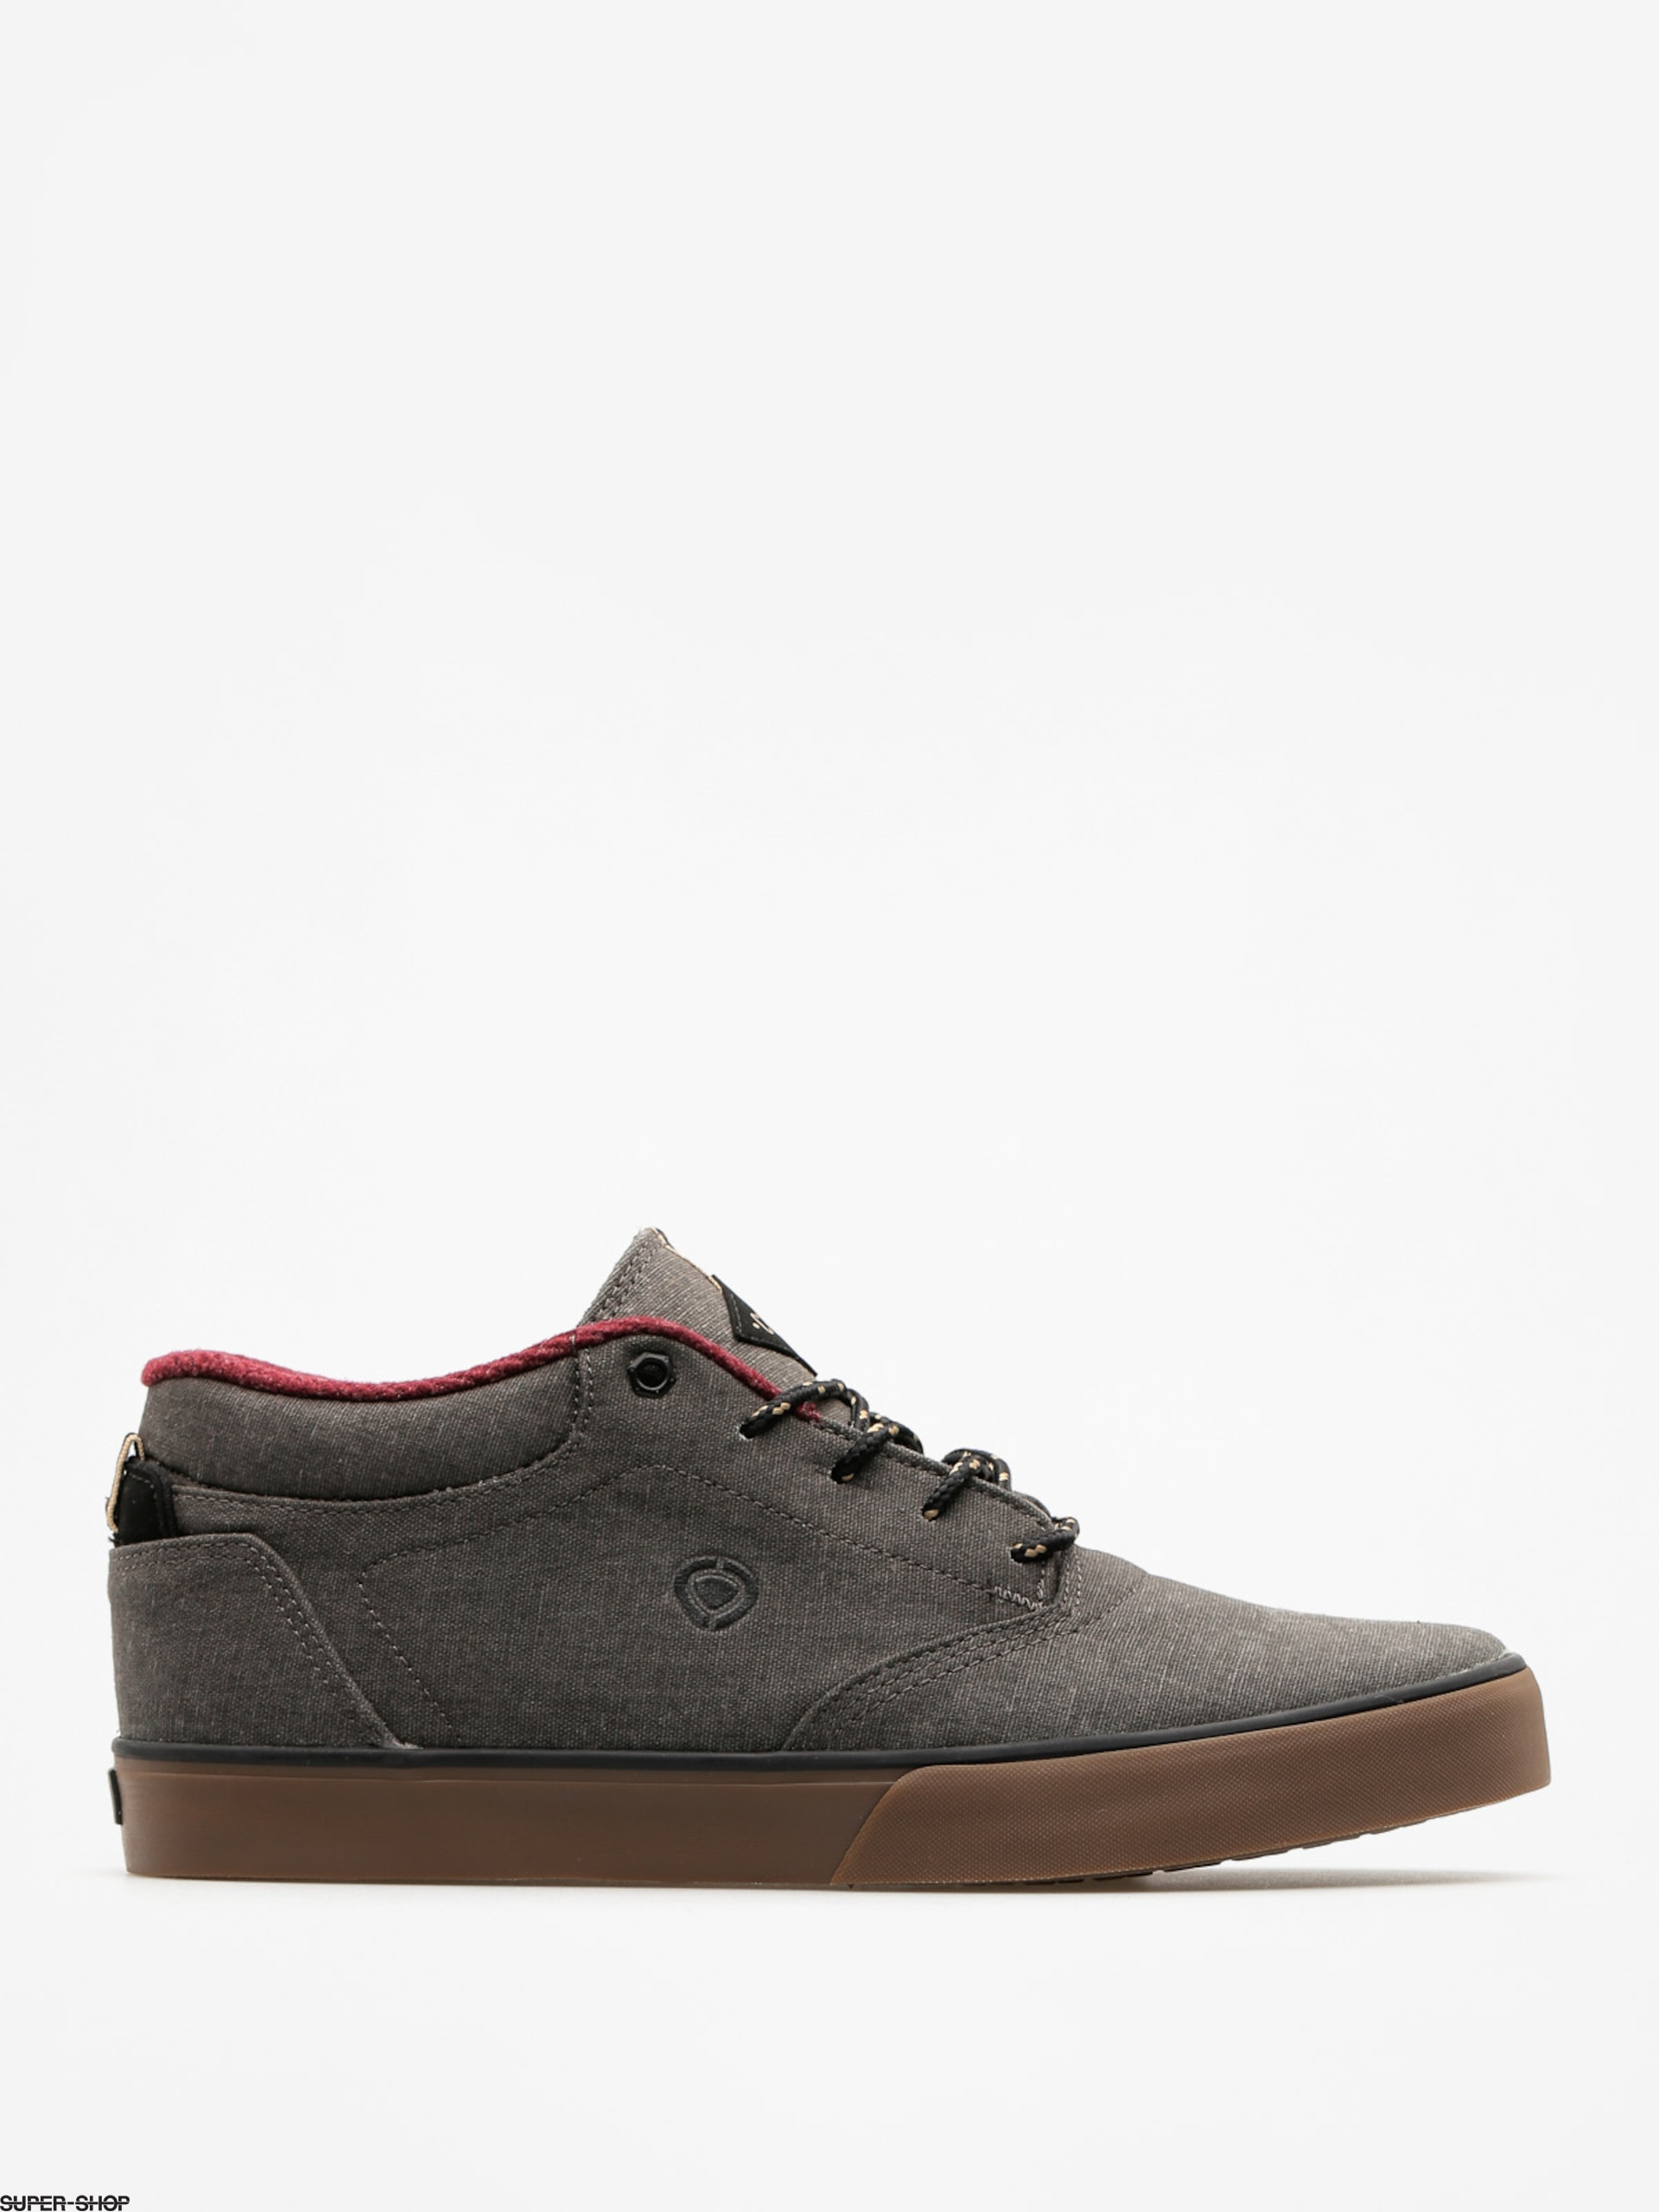 Circa Shoes Lakota Se (charcoal/gum)